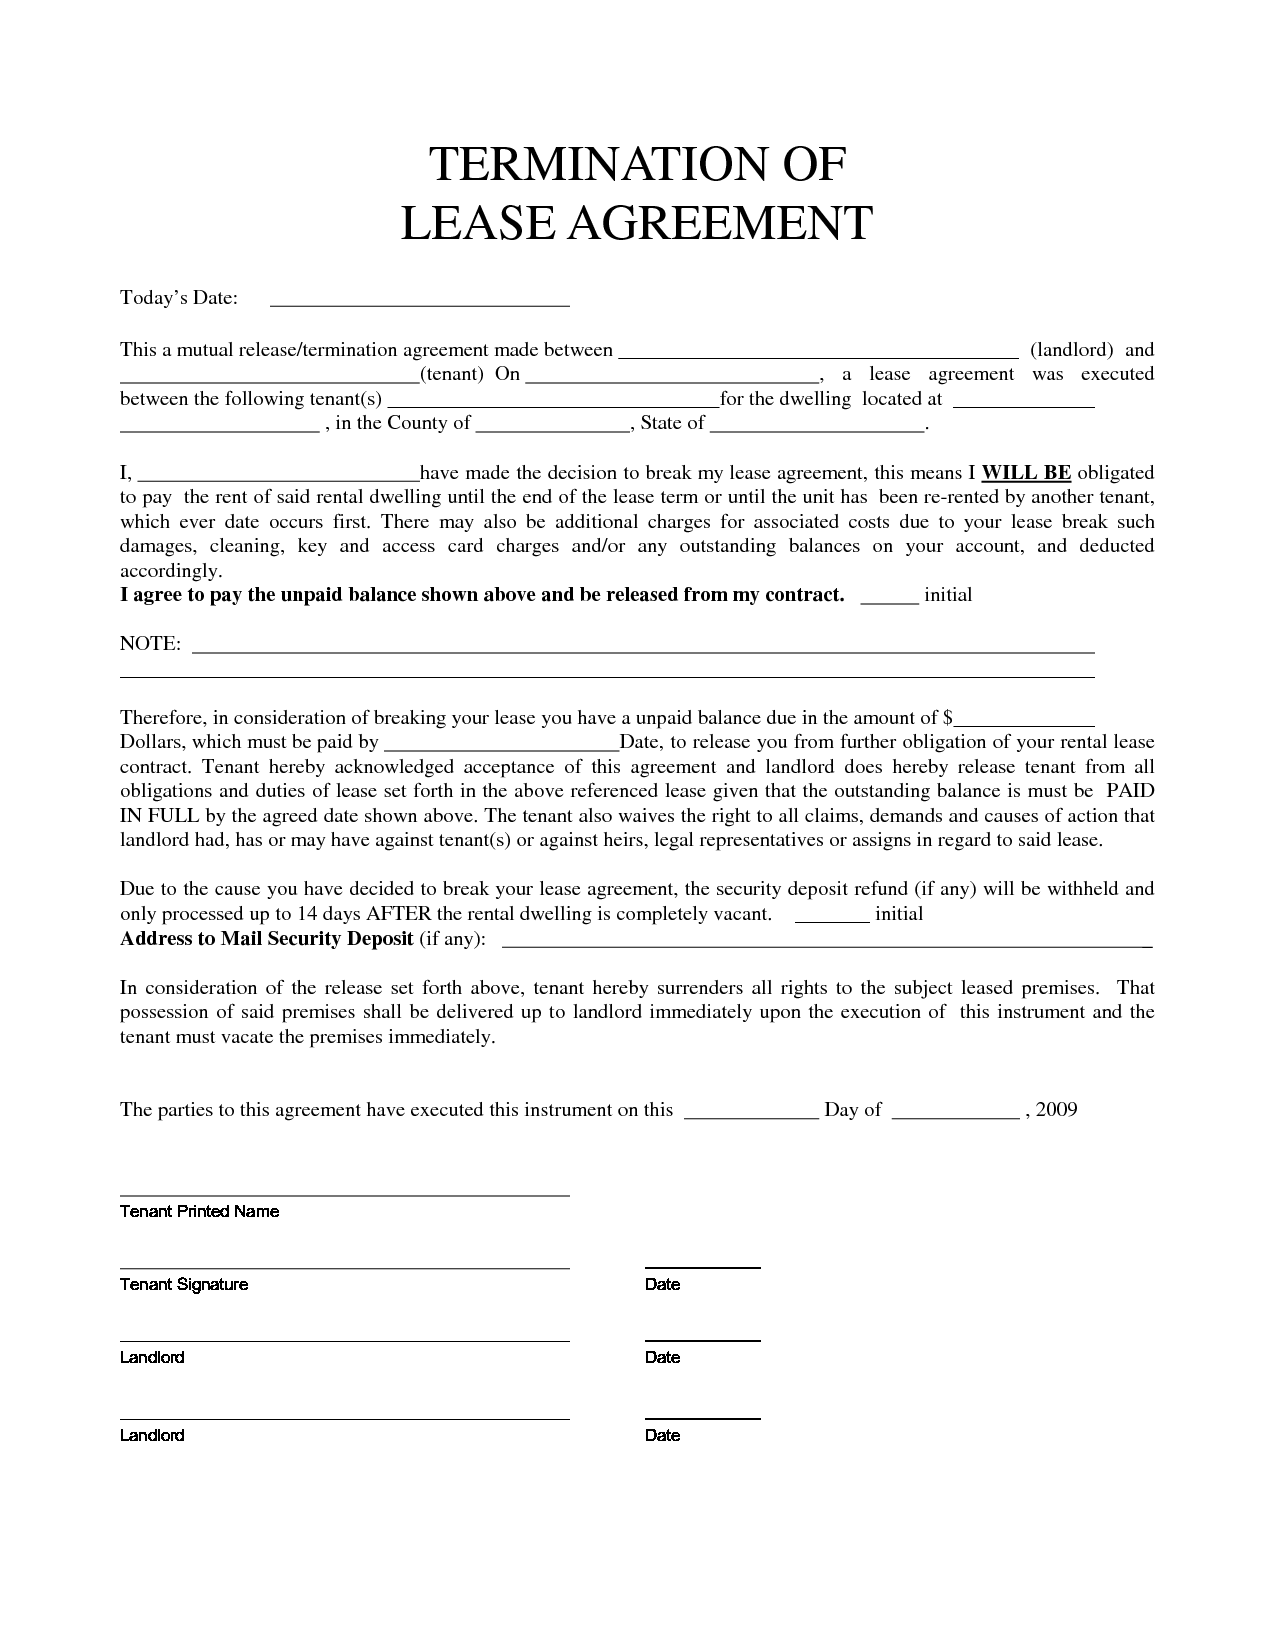 Personal Property Rental Agreement Forms – Rental Lease Agreements